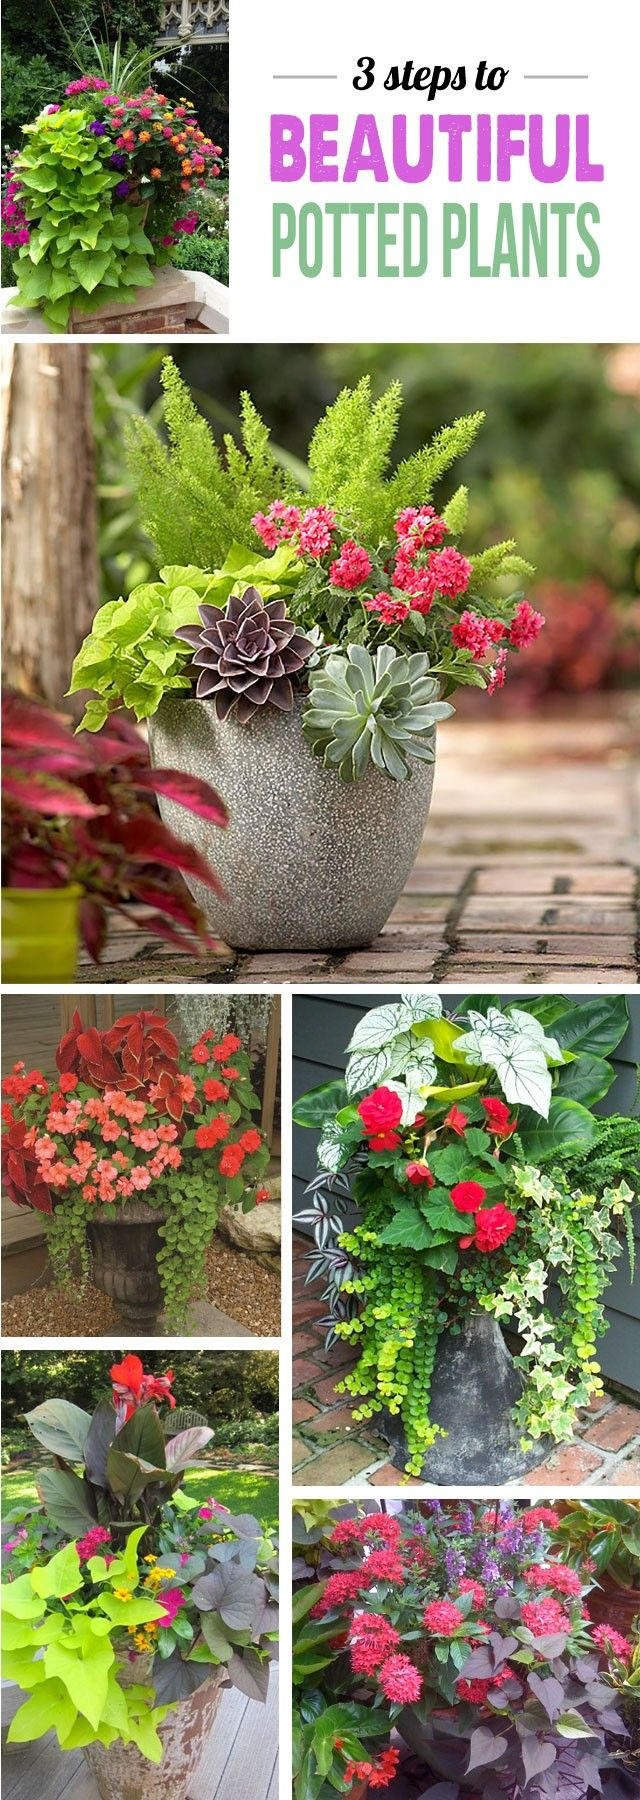 great tips for making stunning potted plant arrangements cant wait to add some